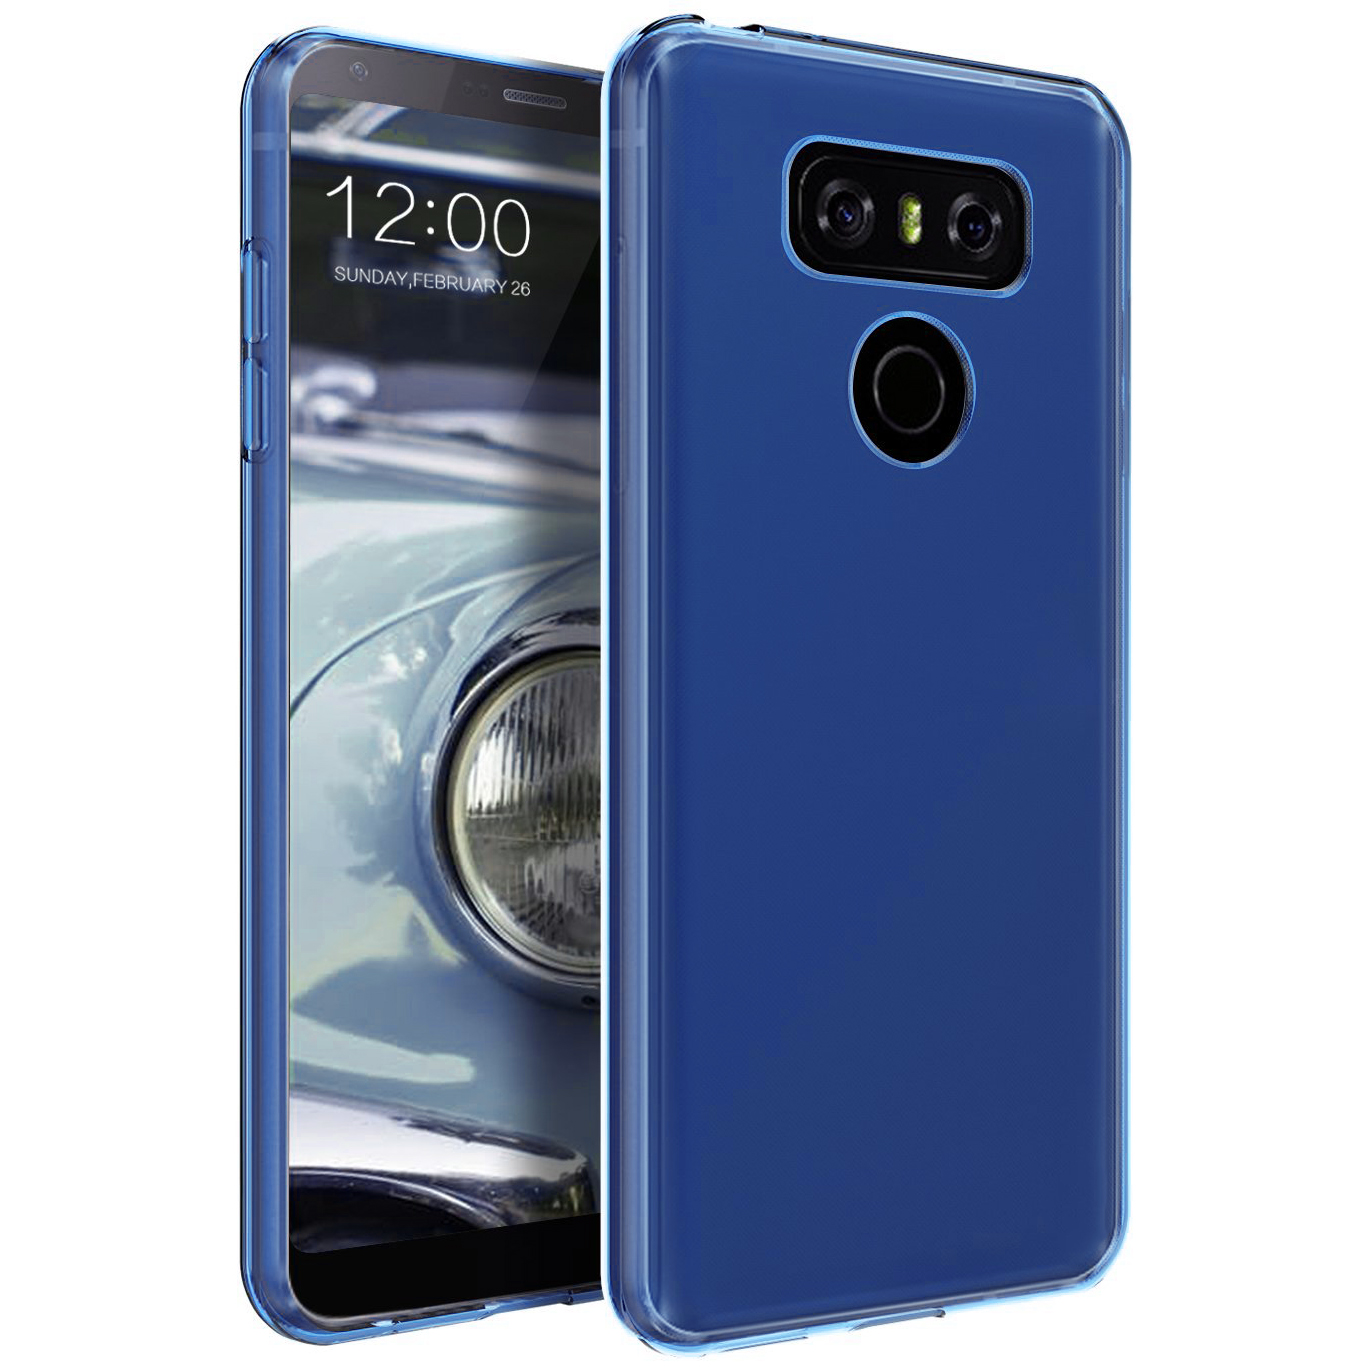 LG G6 Case, Slim & Flexible Anti-shock Crystal Silicone Protective TPU Gel Skin Case Cover [Blue] with Travel Wallet Phone Stand